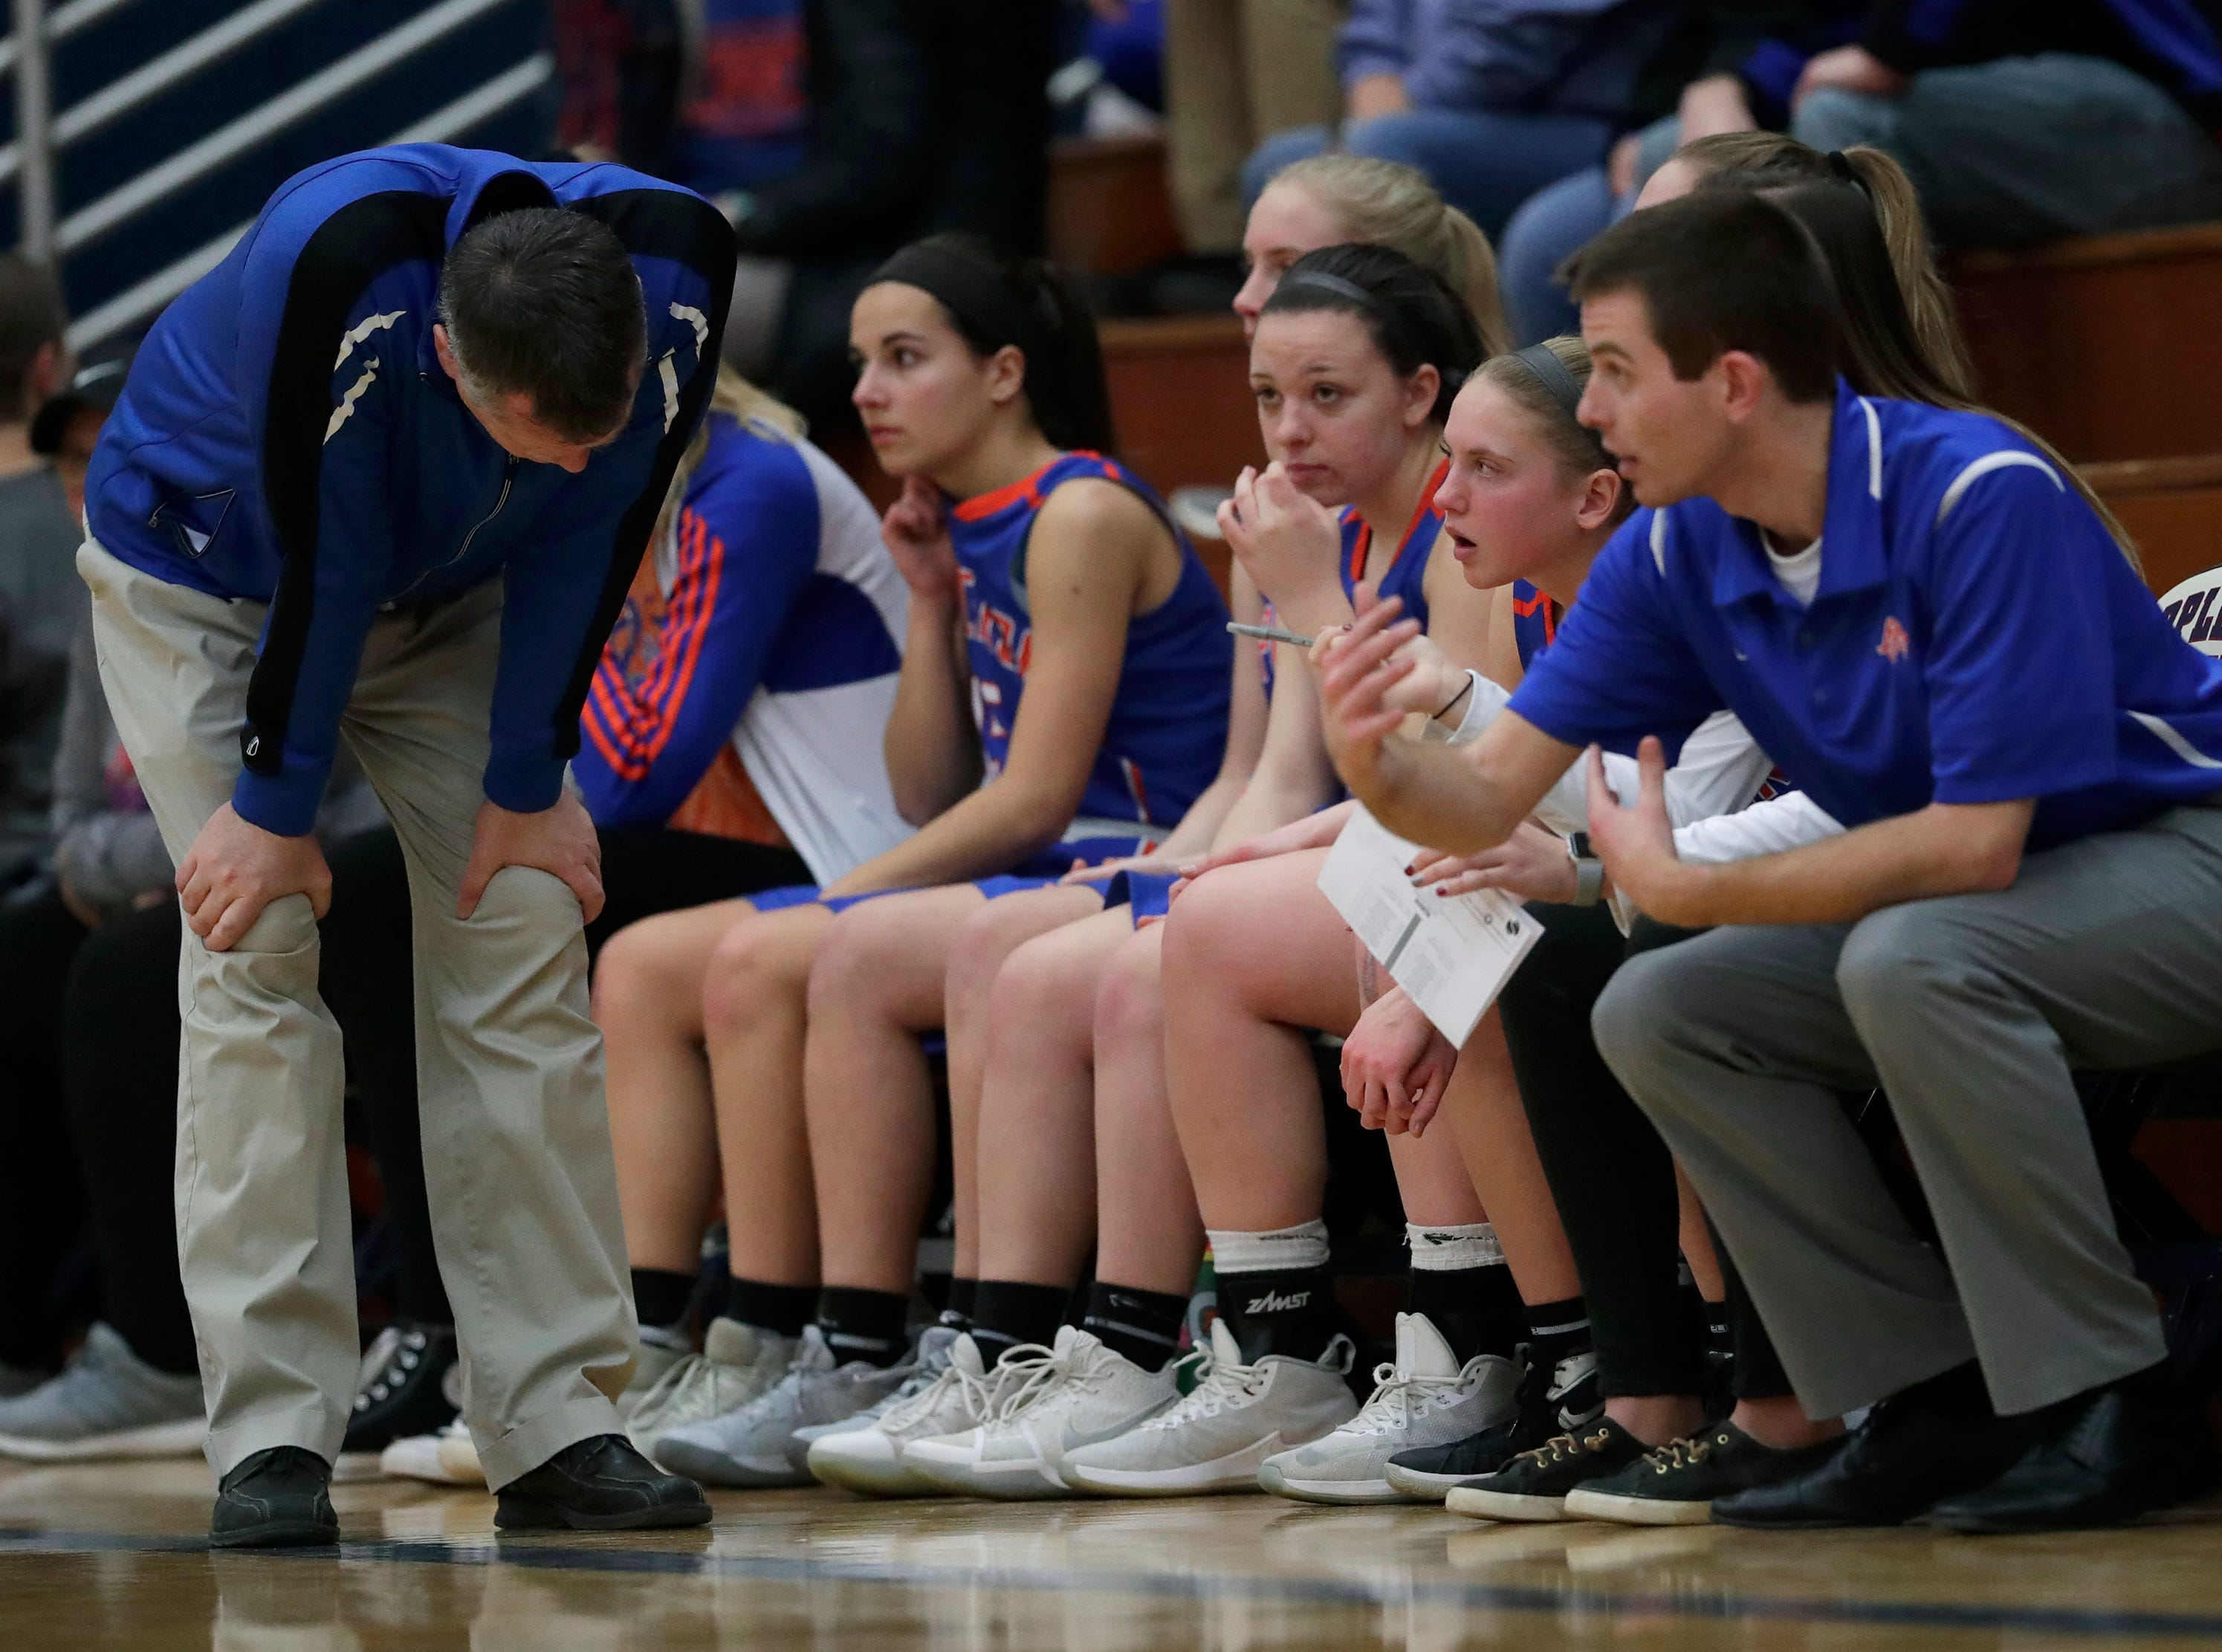 Appleton West High School's coachJim Brown, left, shows his frustration early in the game against Appleton East High School during their girls basketball game Friday, January 11, 2019, at Appleton East High School in Appleton, Wis. 